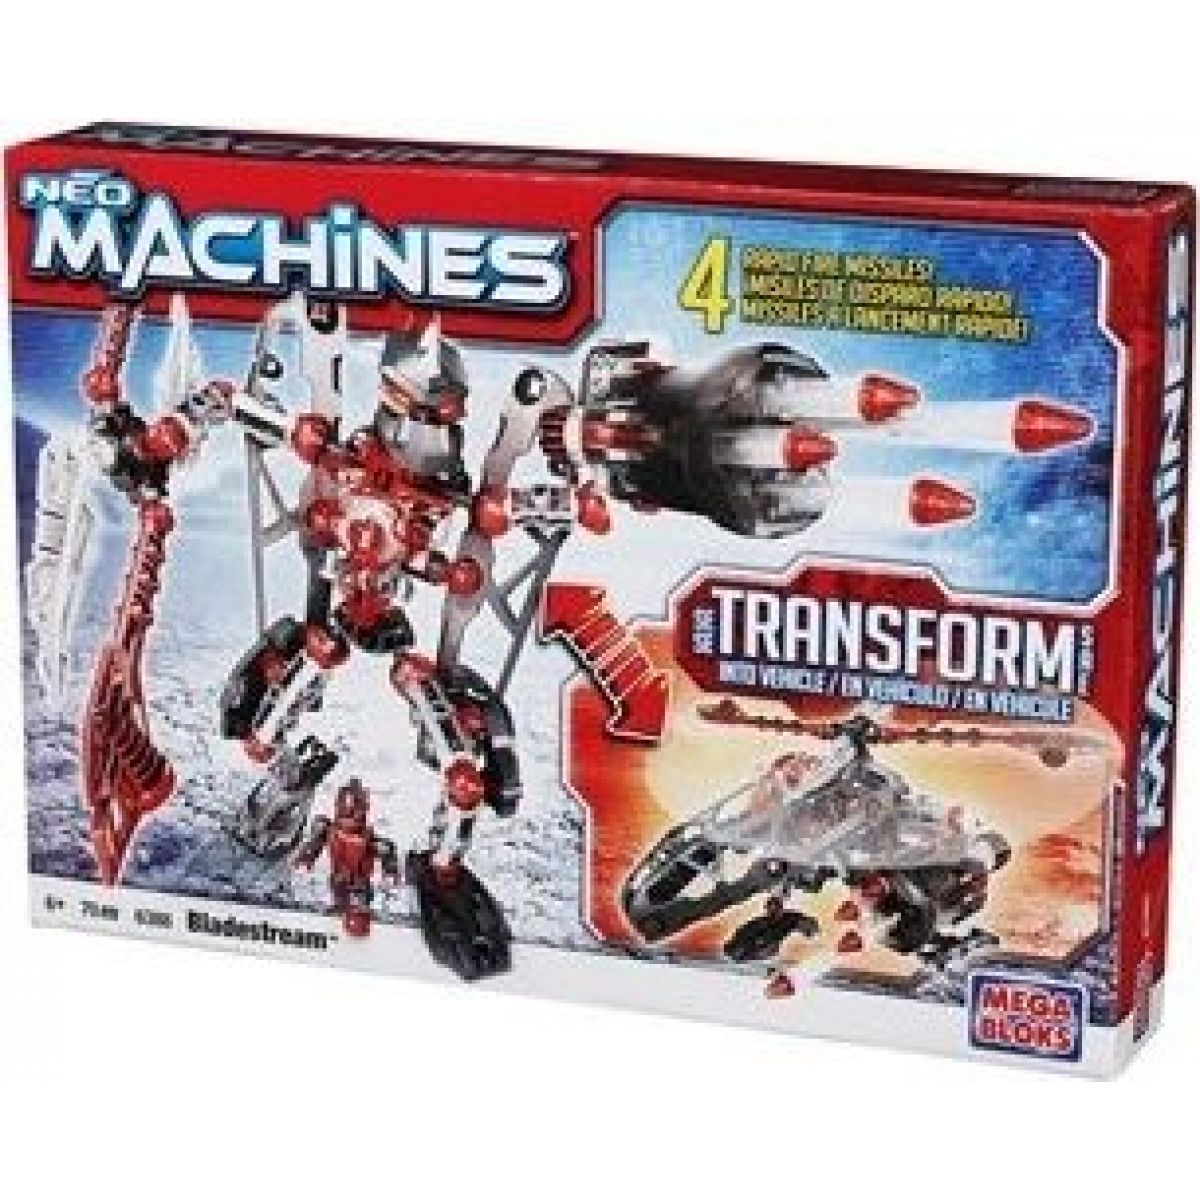 Megabloks 6388 Neo Machines Bladestream